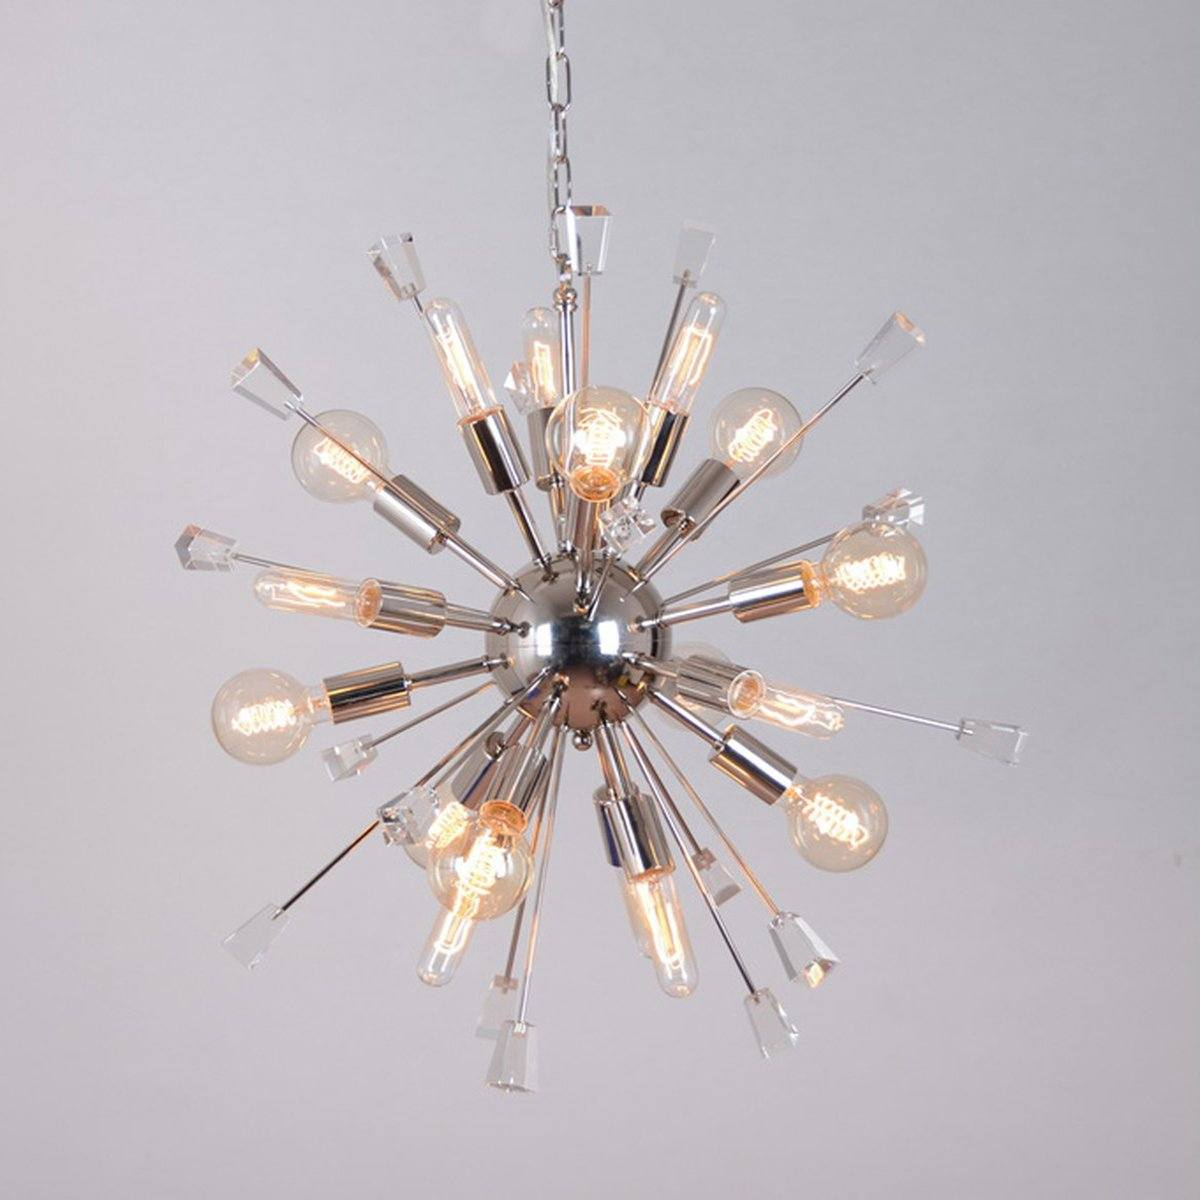 SATELITE CHANDELIER - Showhome Furniture